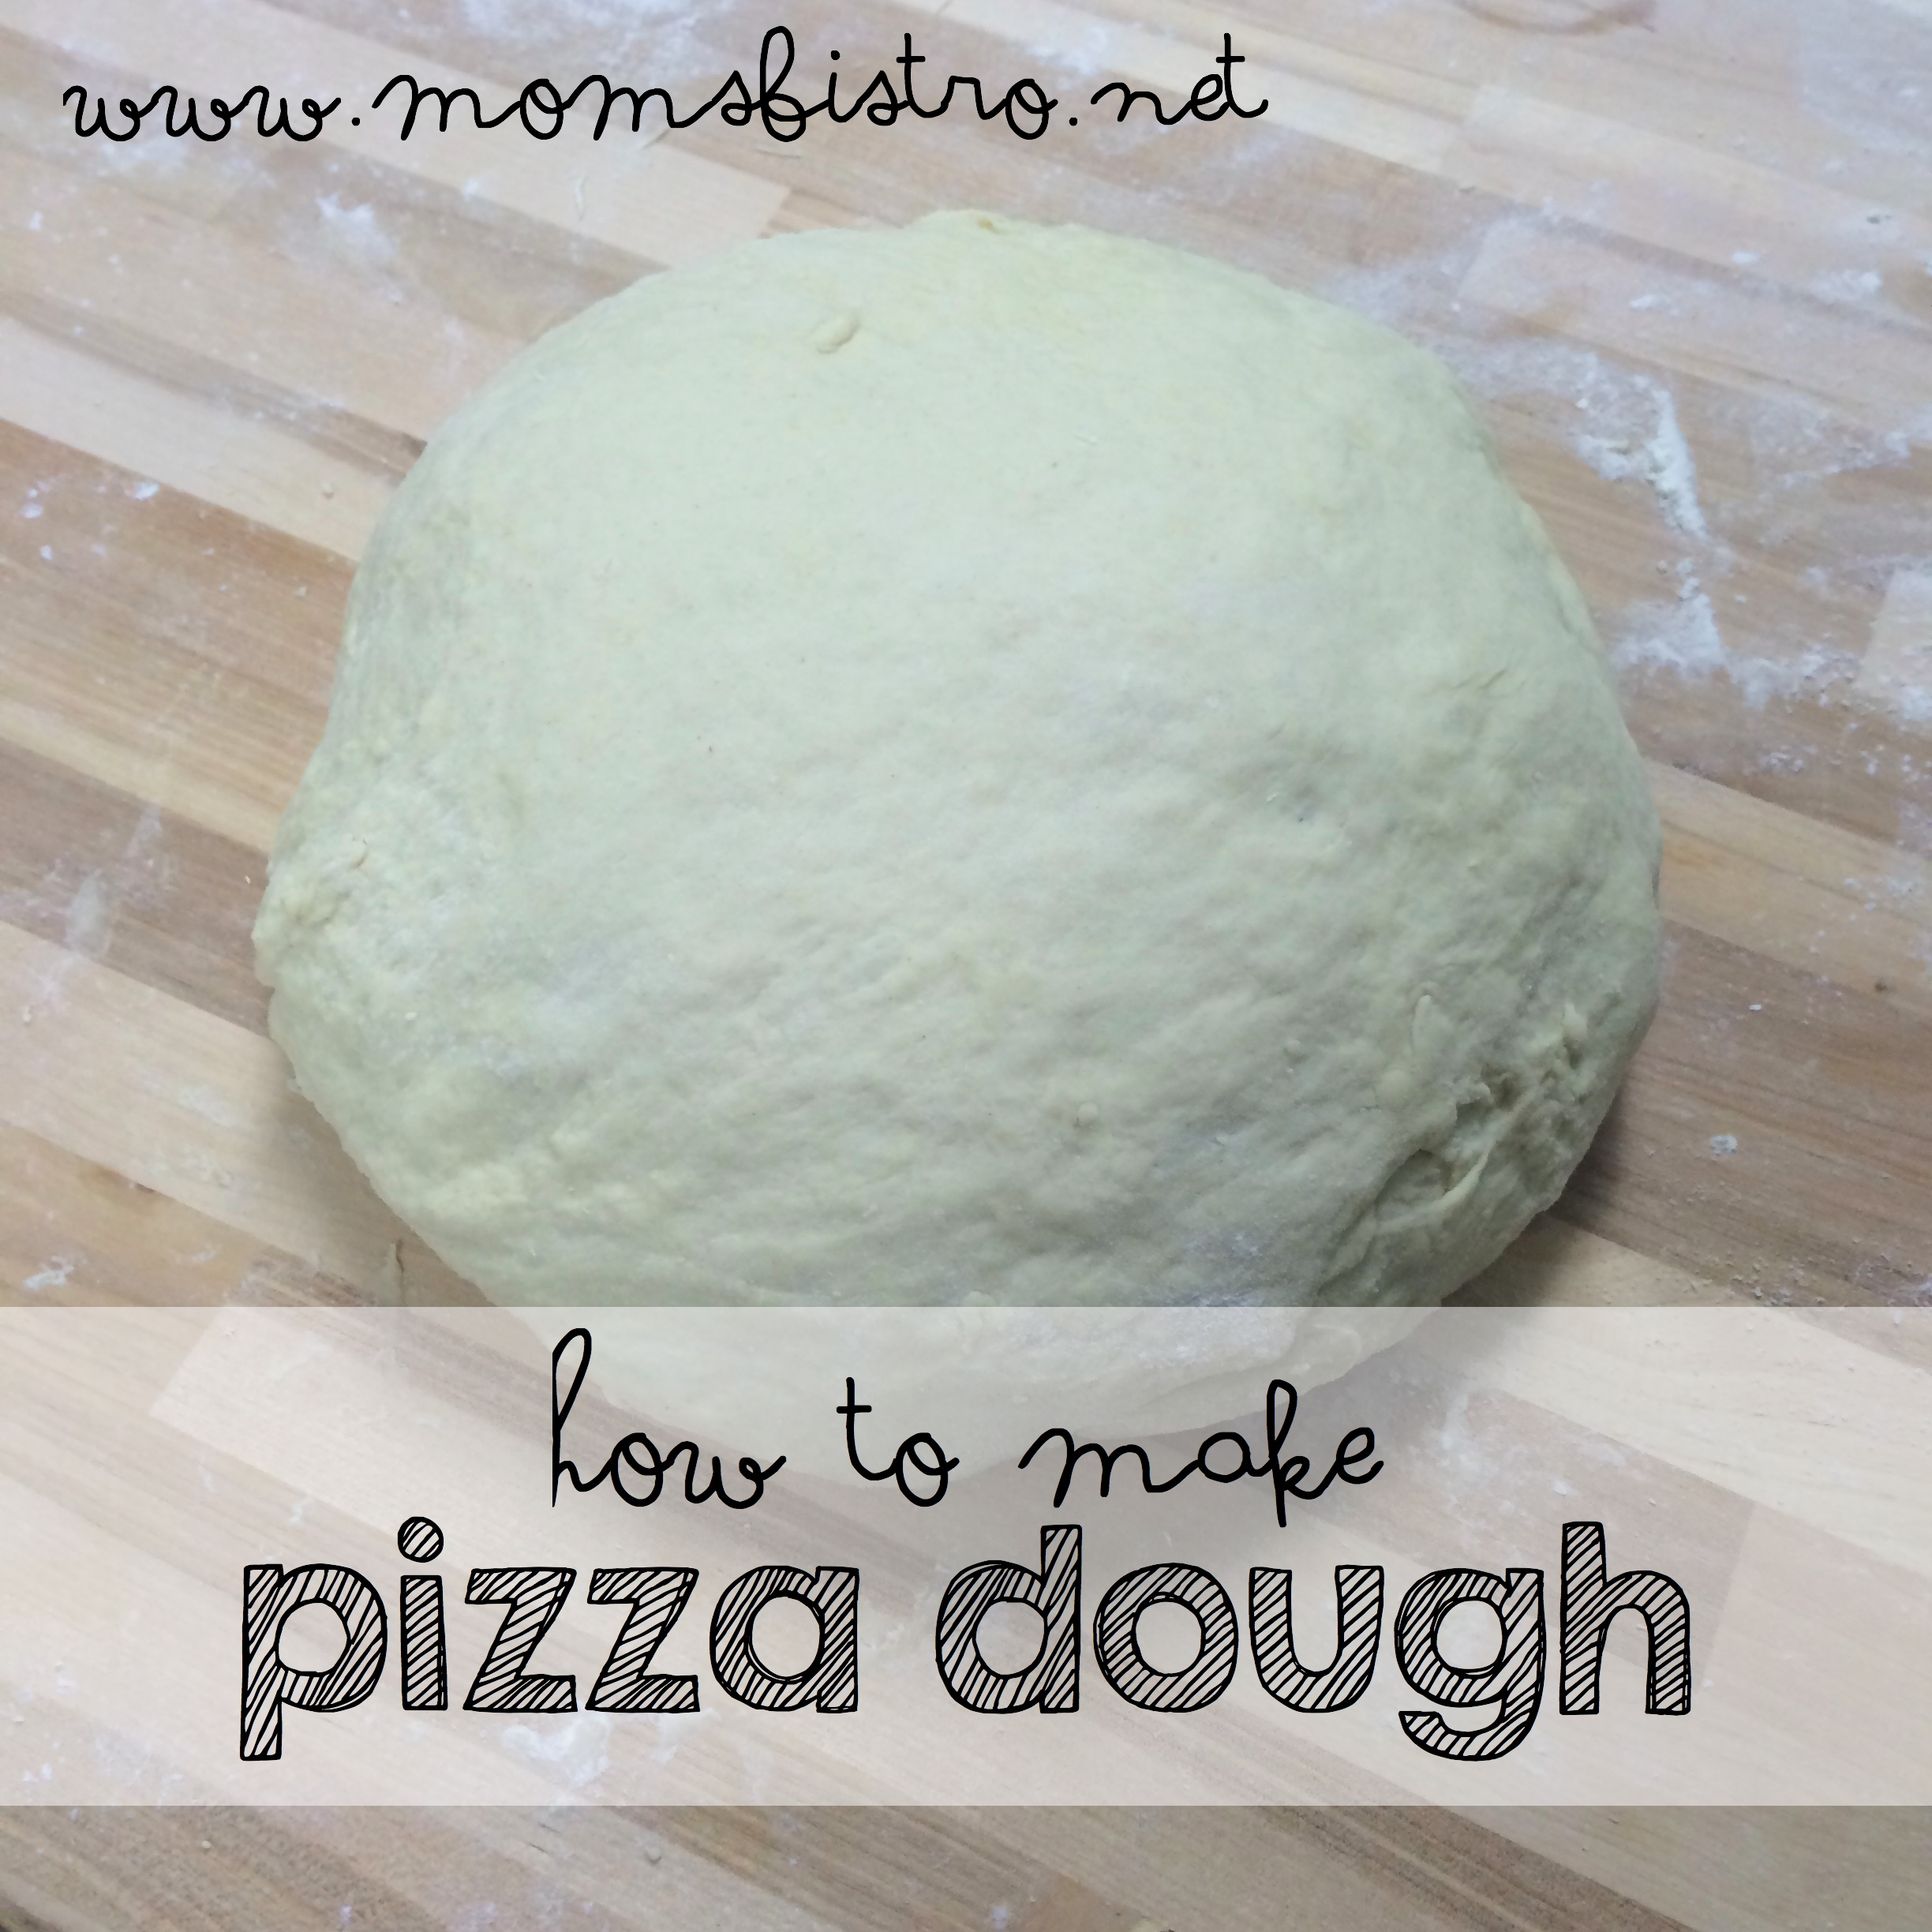 learn how to make pizza dough